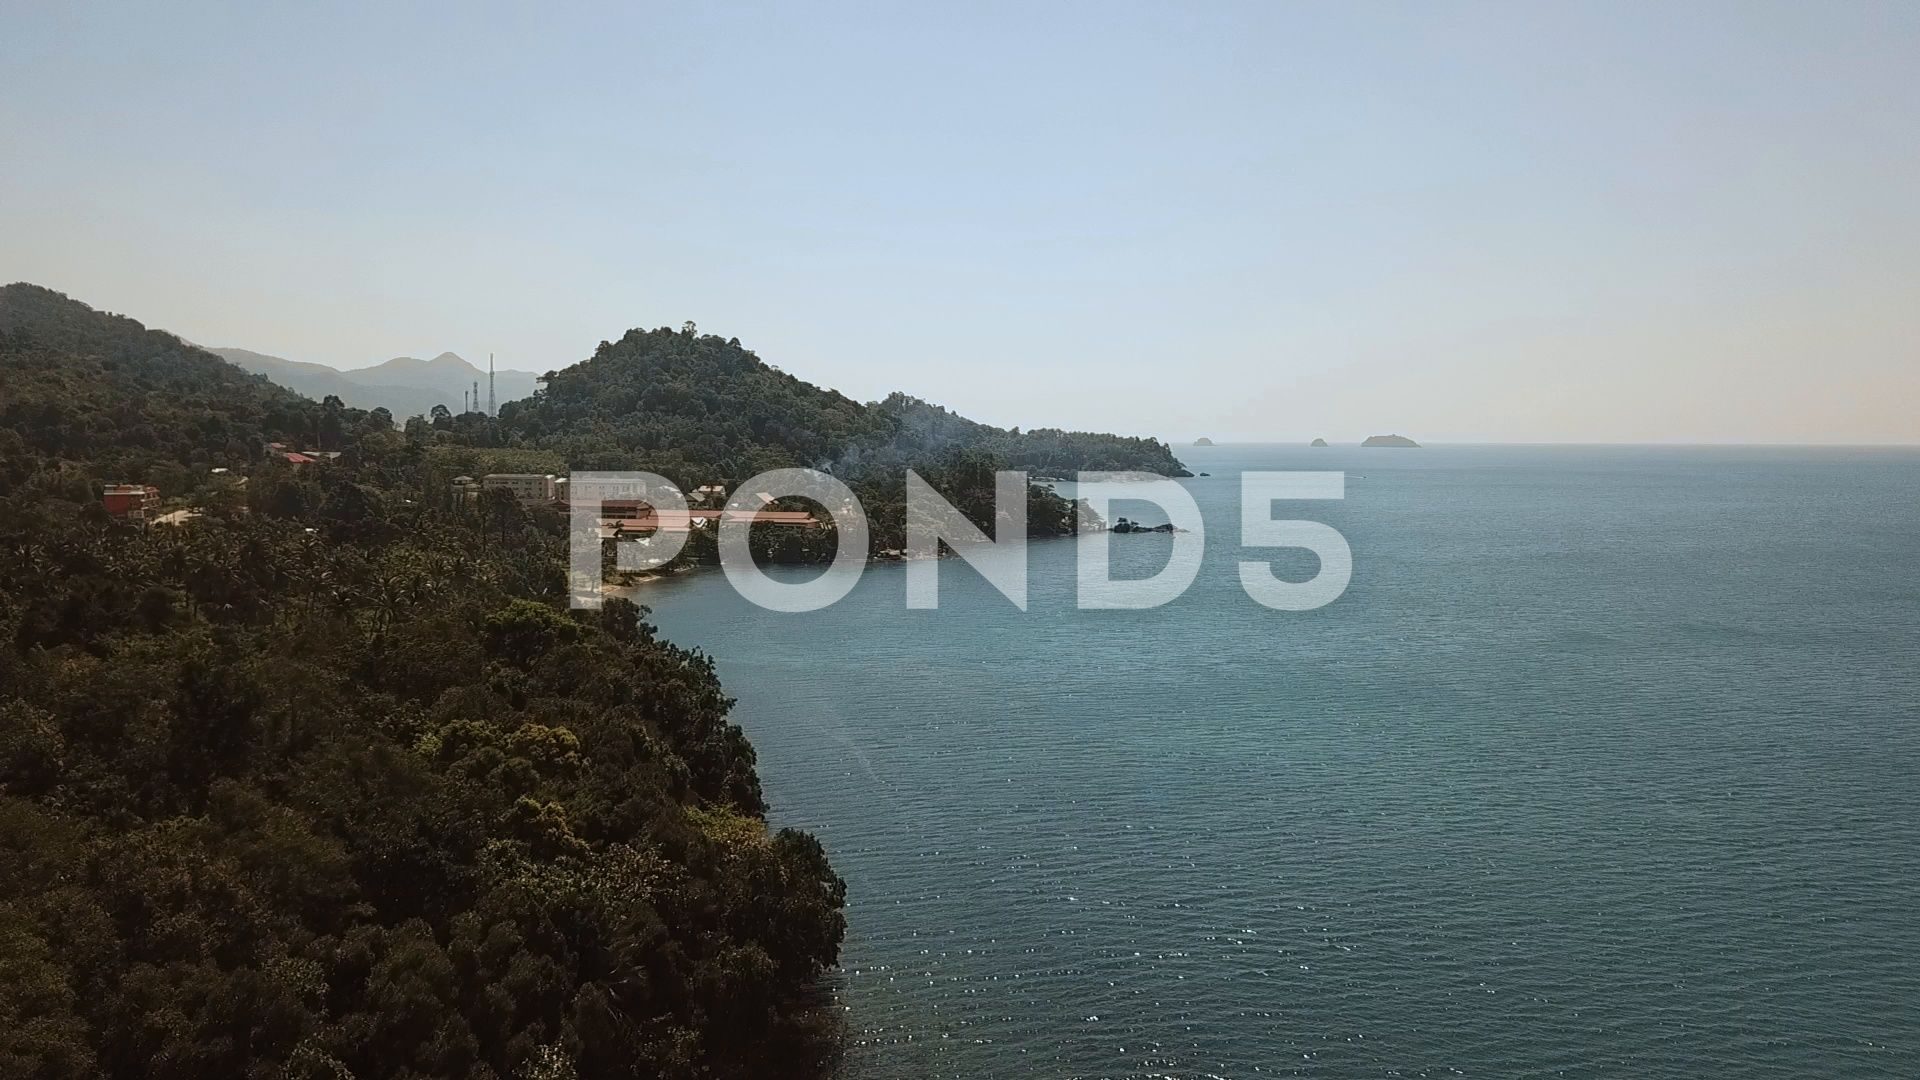 Beauty Nature Landscape With Tropical Beach Stock Footage Ad Landscape Nature Beauty Tropical Natural Beauty Tropical Beach Landscape